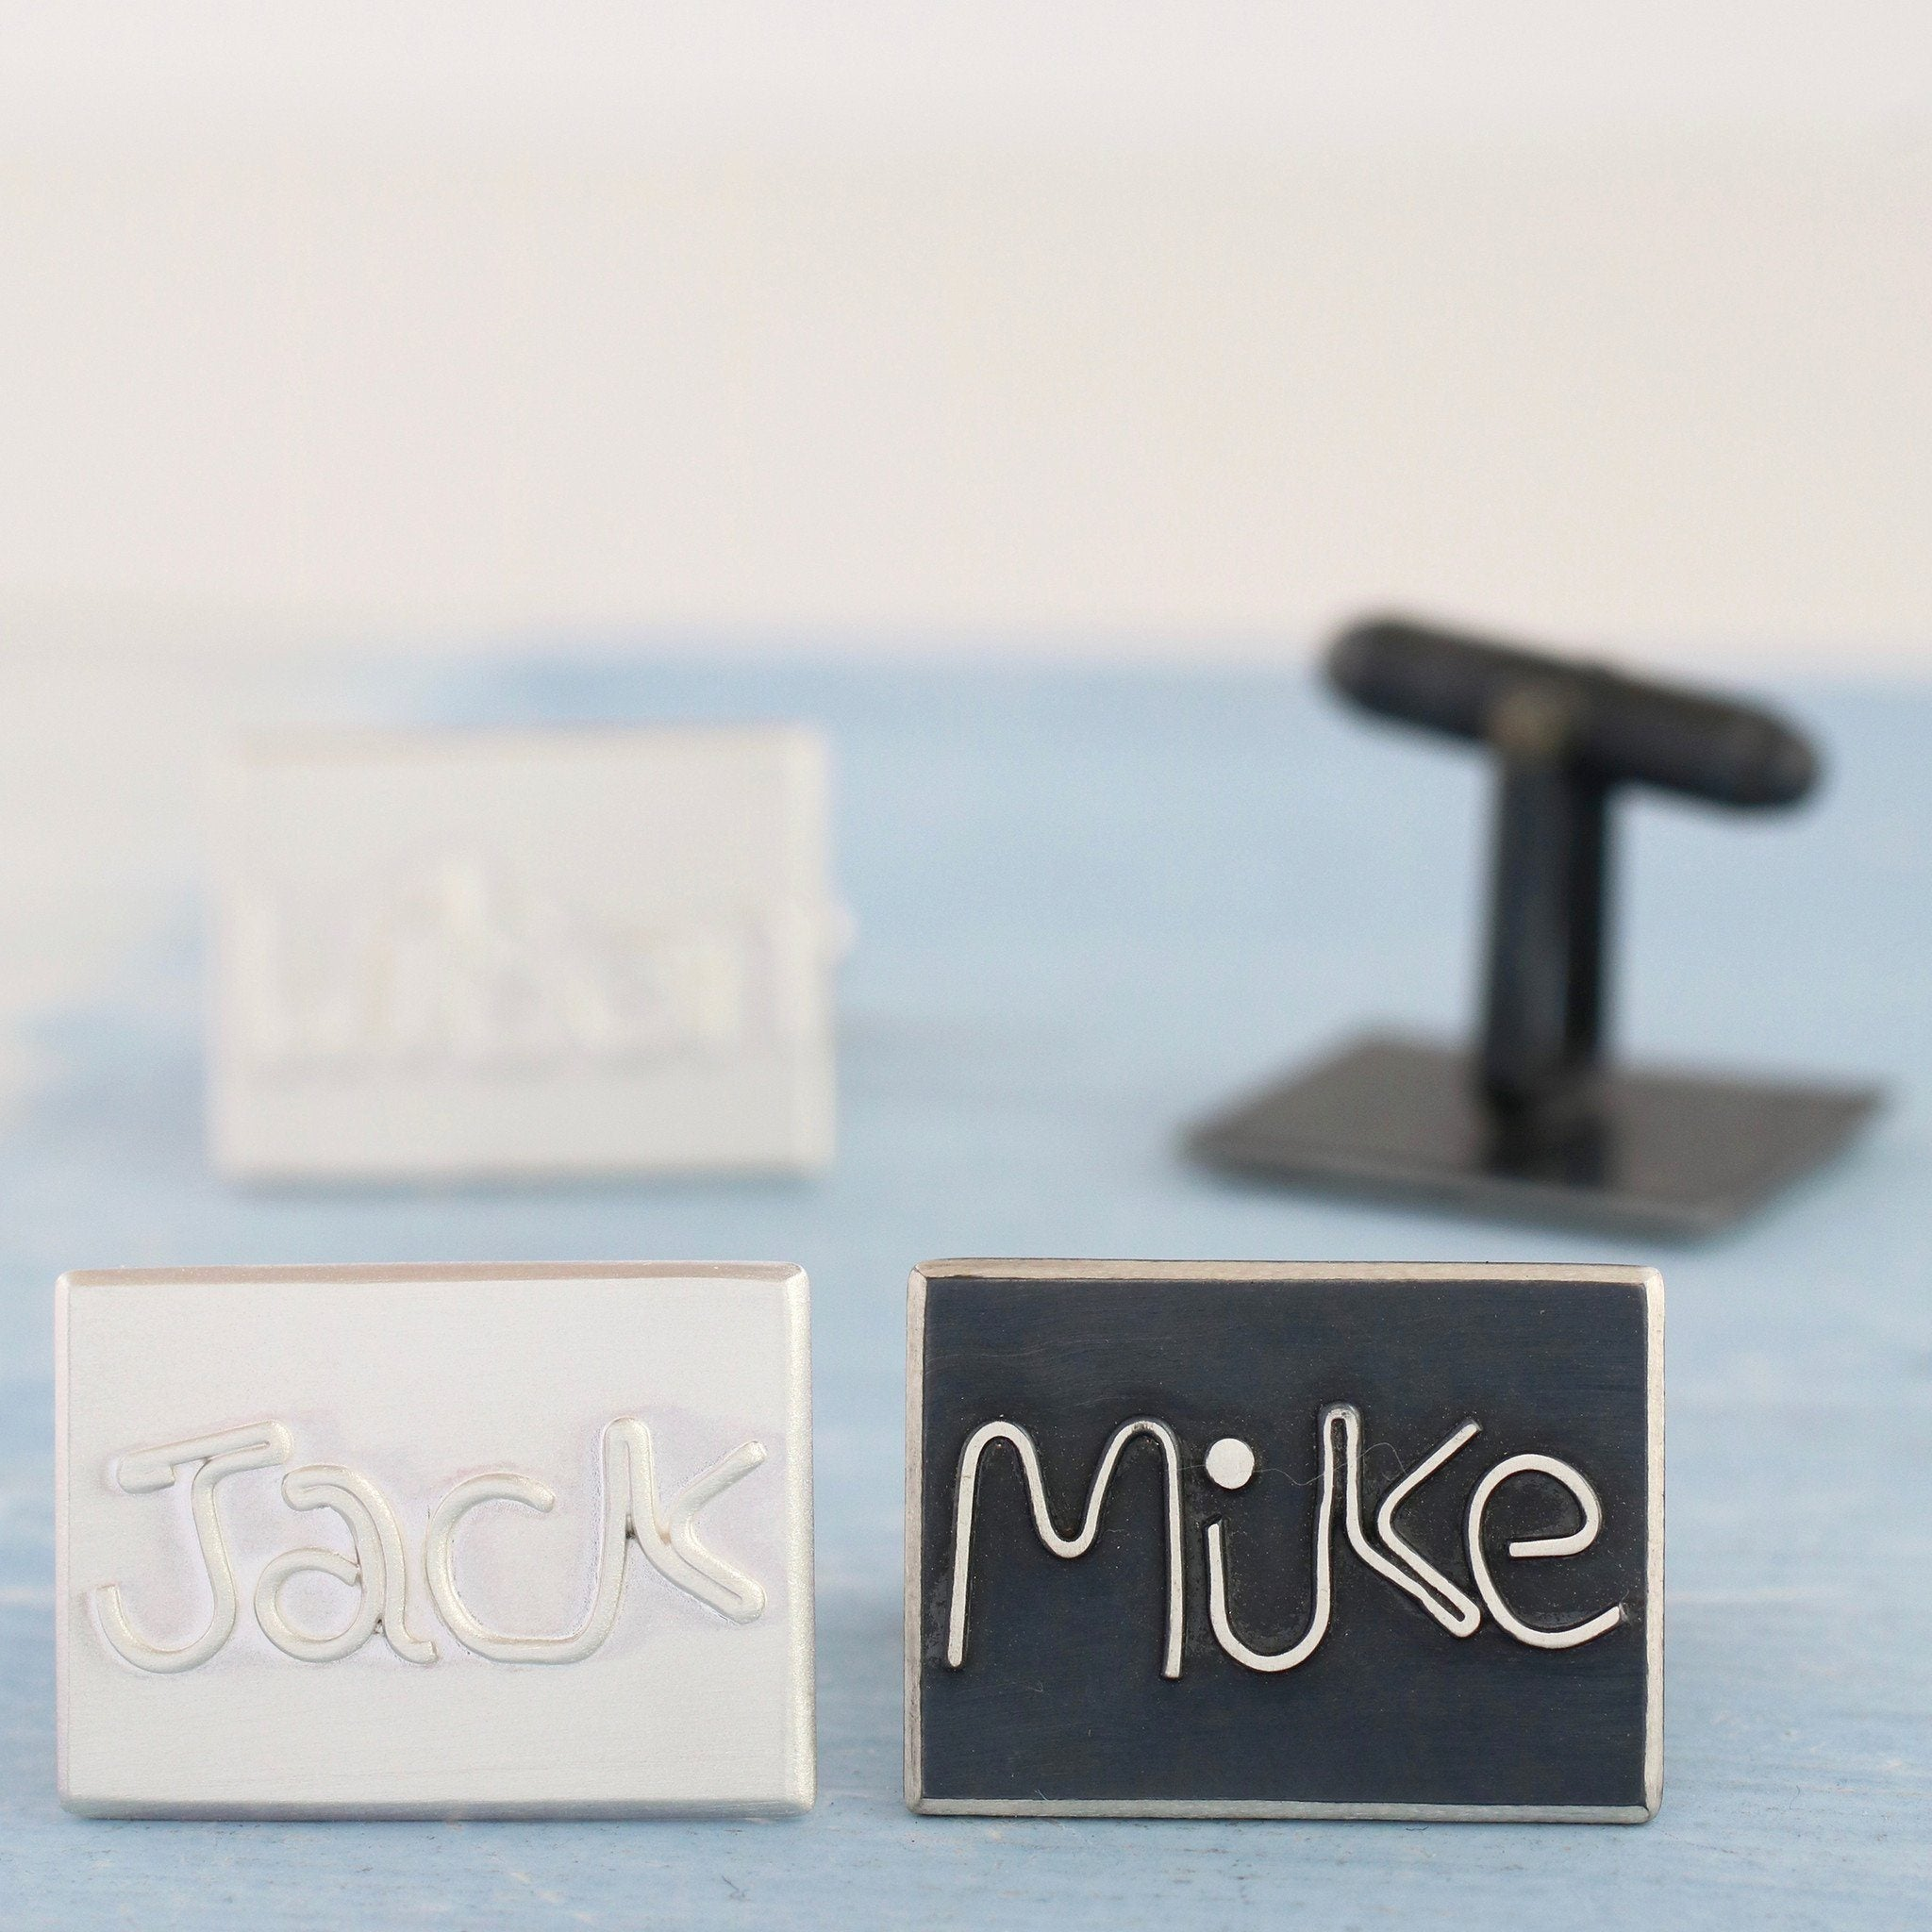 personalised sterling silver name cufflinks